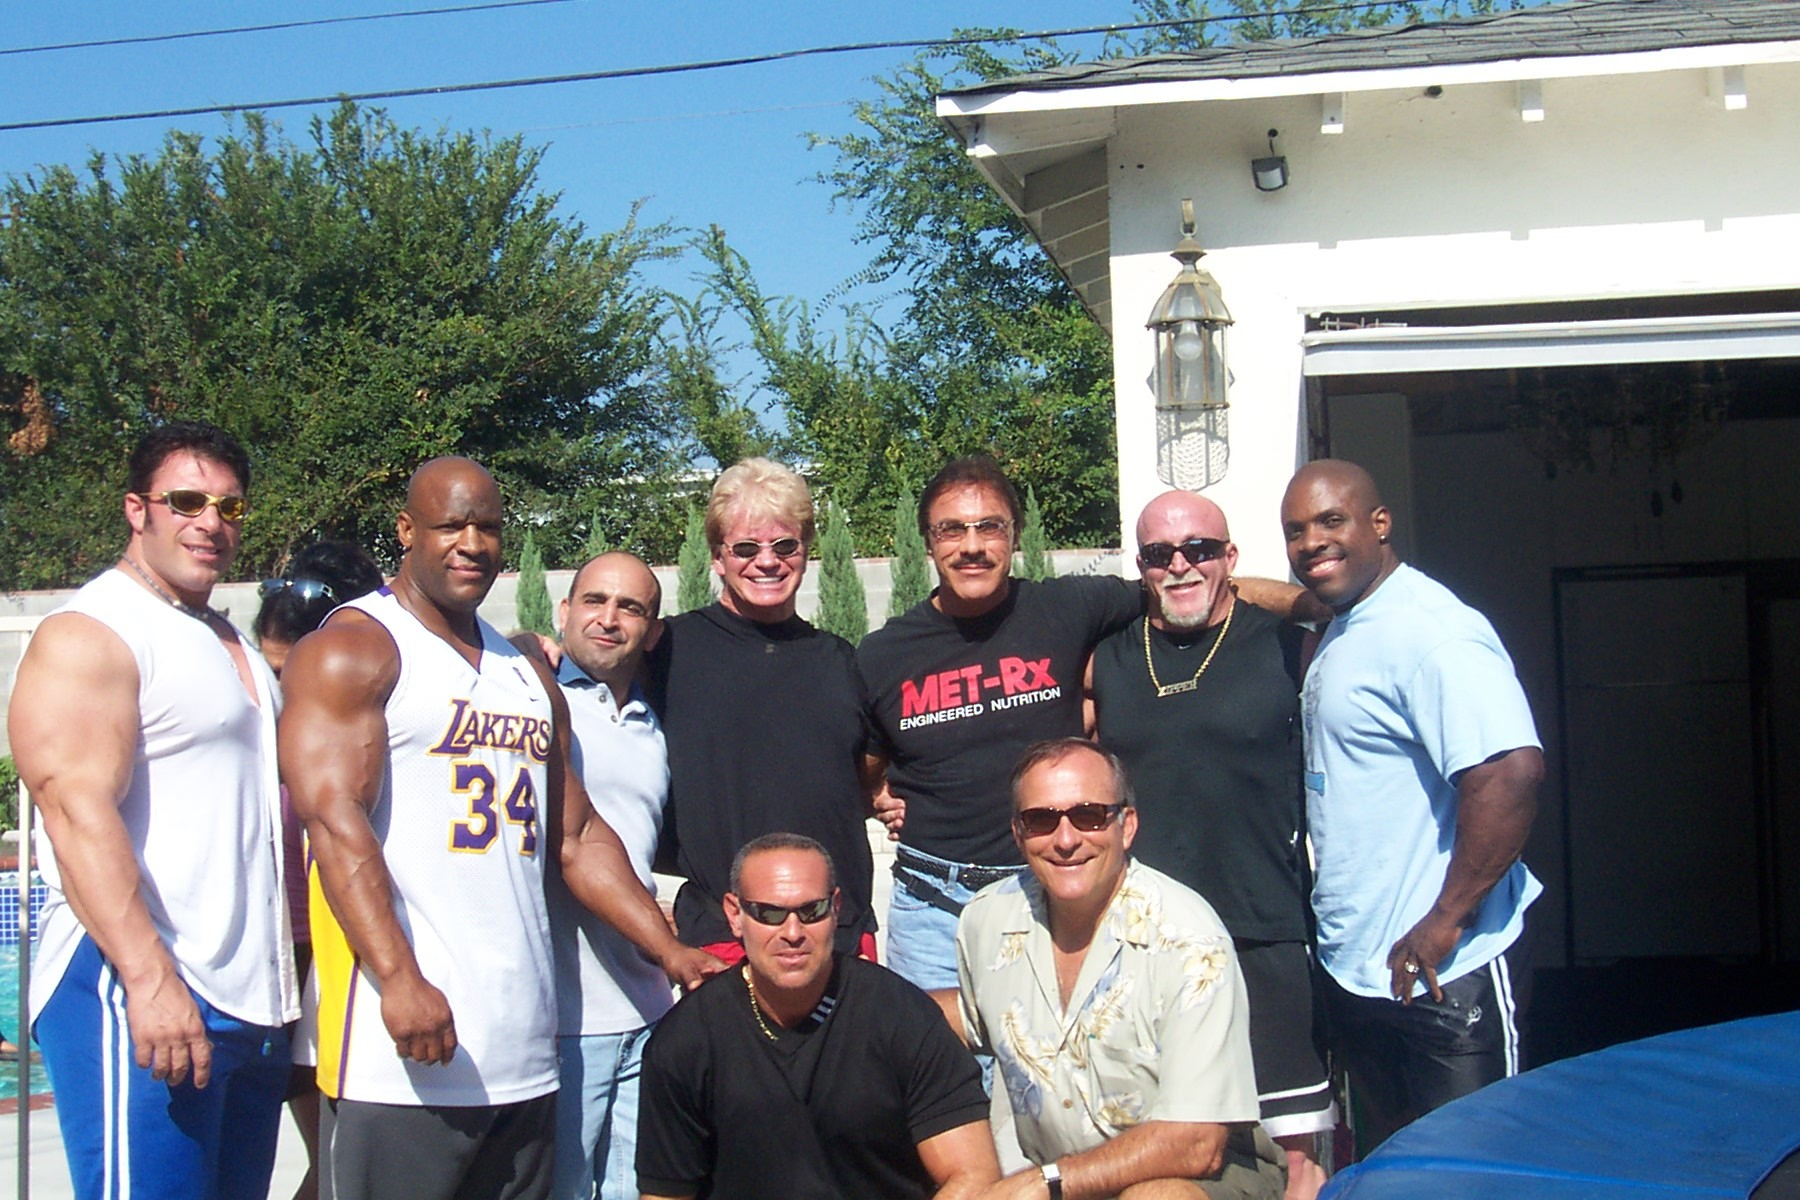 Gathering of the greats at the house.